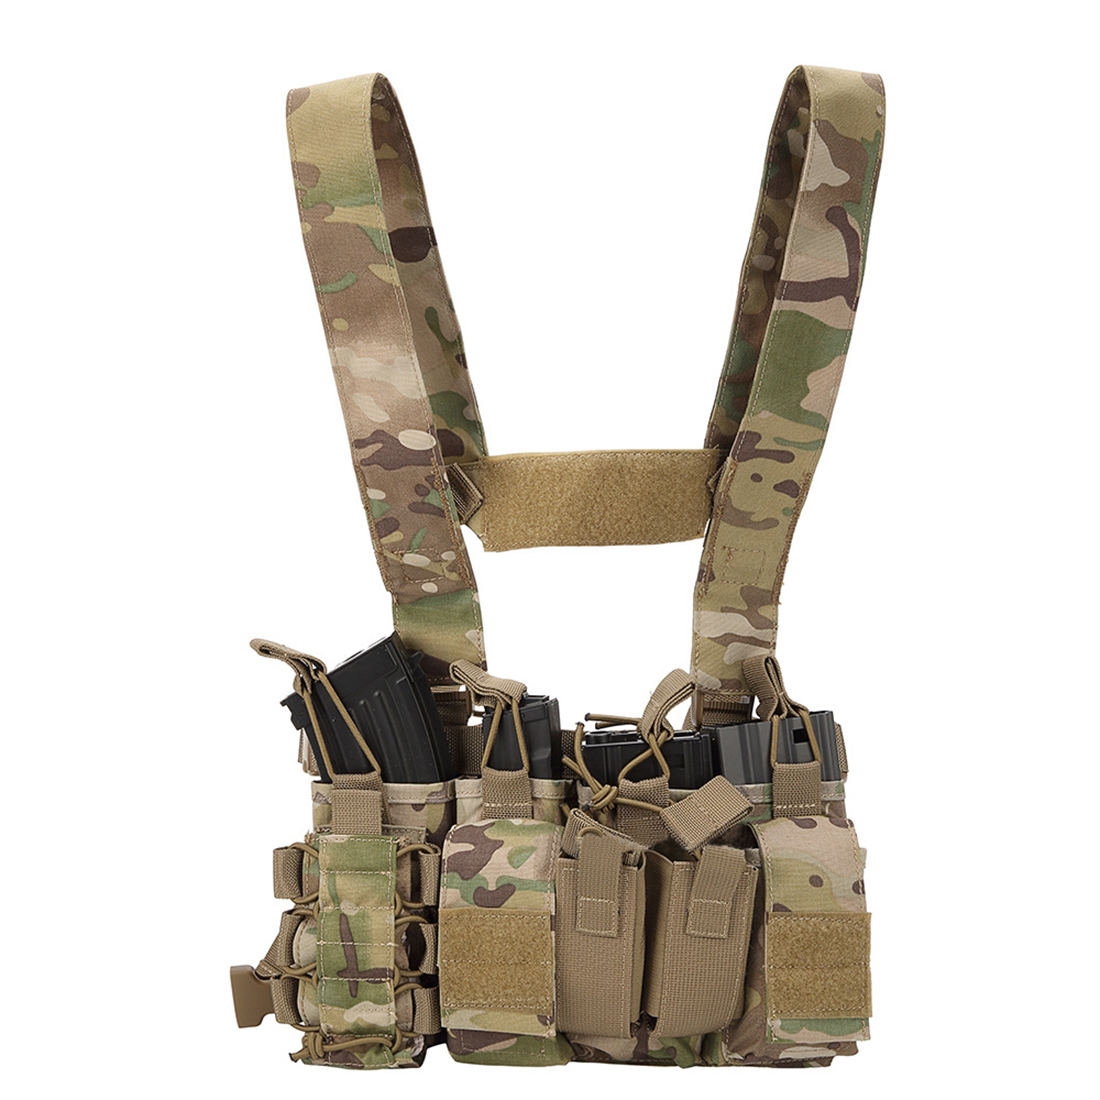 Light Weight Heavy Duty Utility Training Multi Pocket D3 Carrier Military Chest Rig  for Army Hunting Airsoft Shooting - CPLight Weight Heavy Duty Utility Training Multi Pocket D3 Carrier Military Chest Rig  for Army Hunting Airsoft Shooting - CP